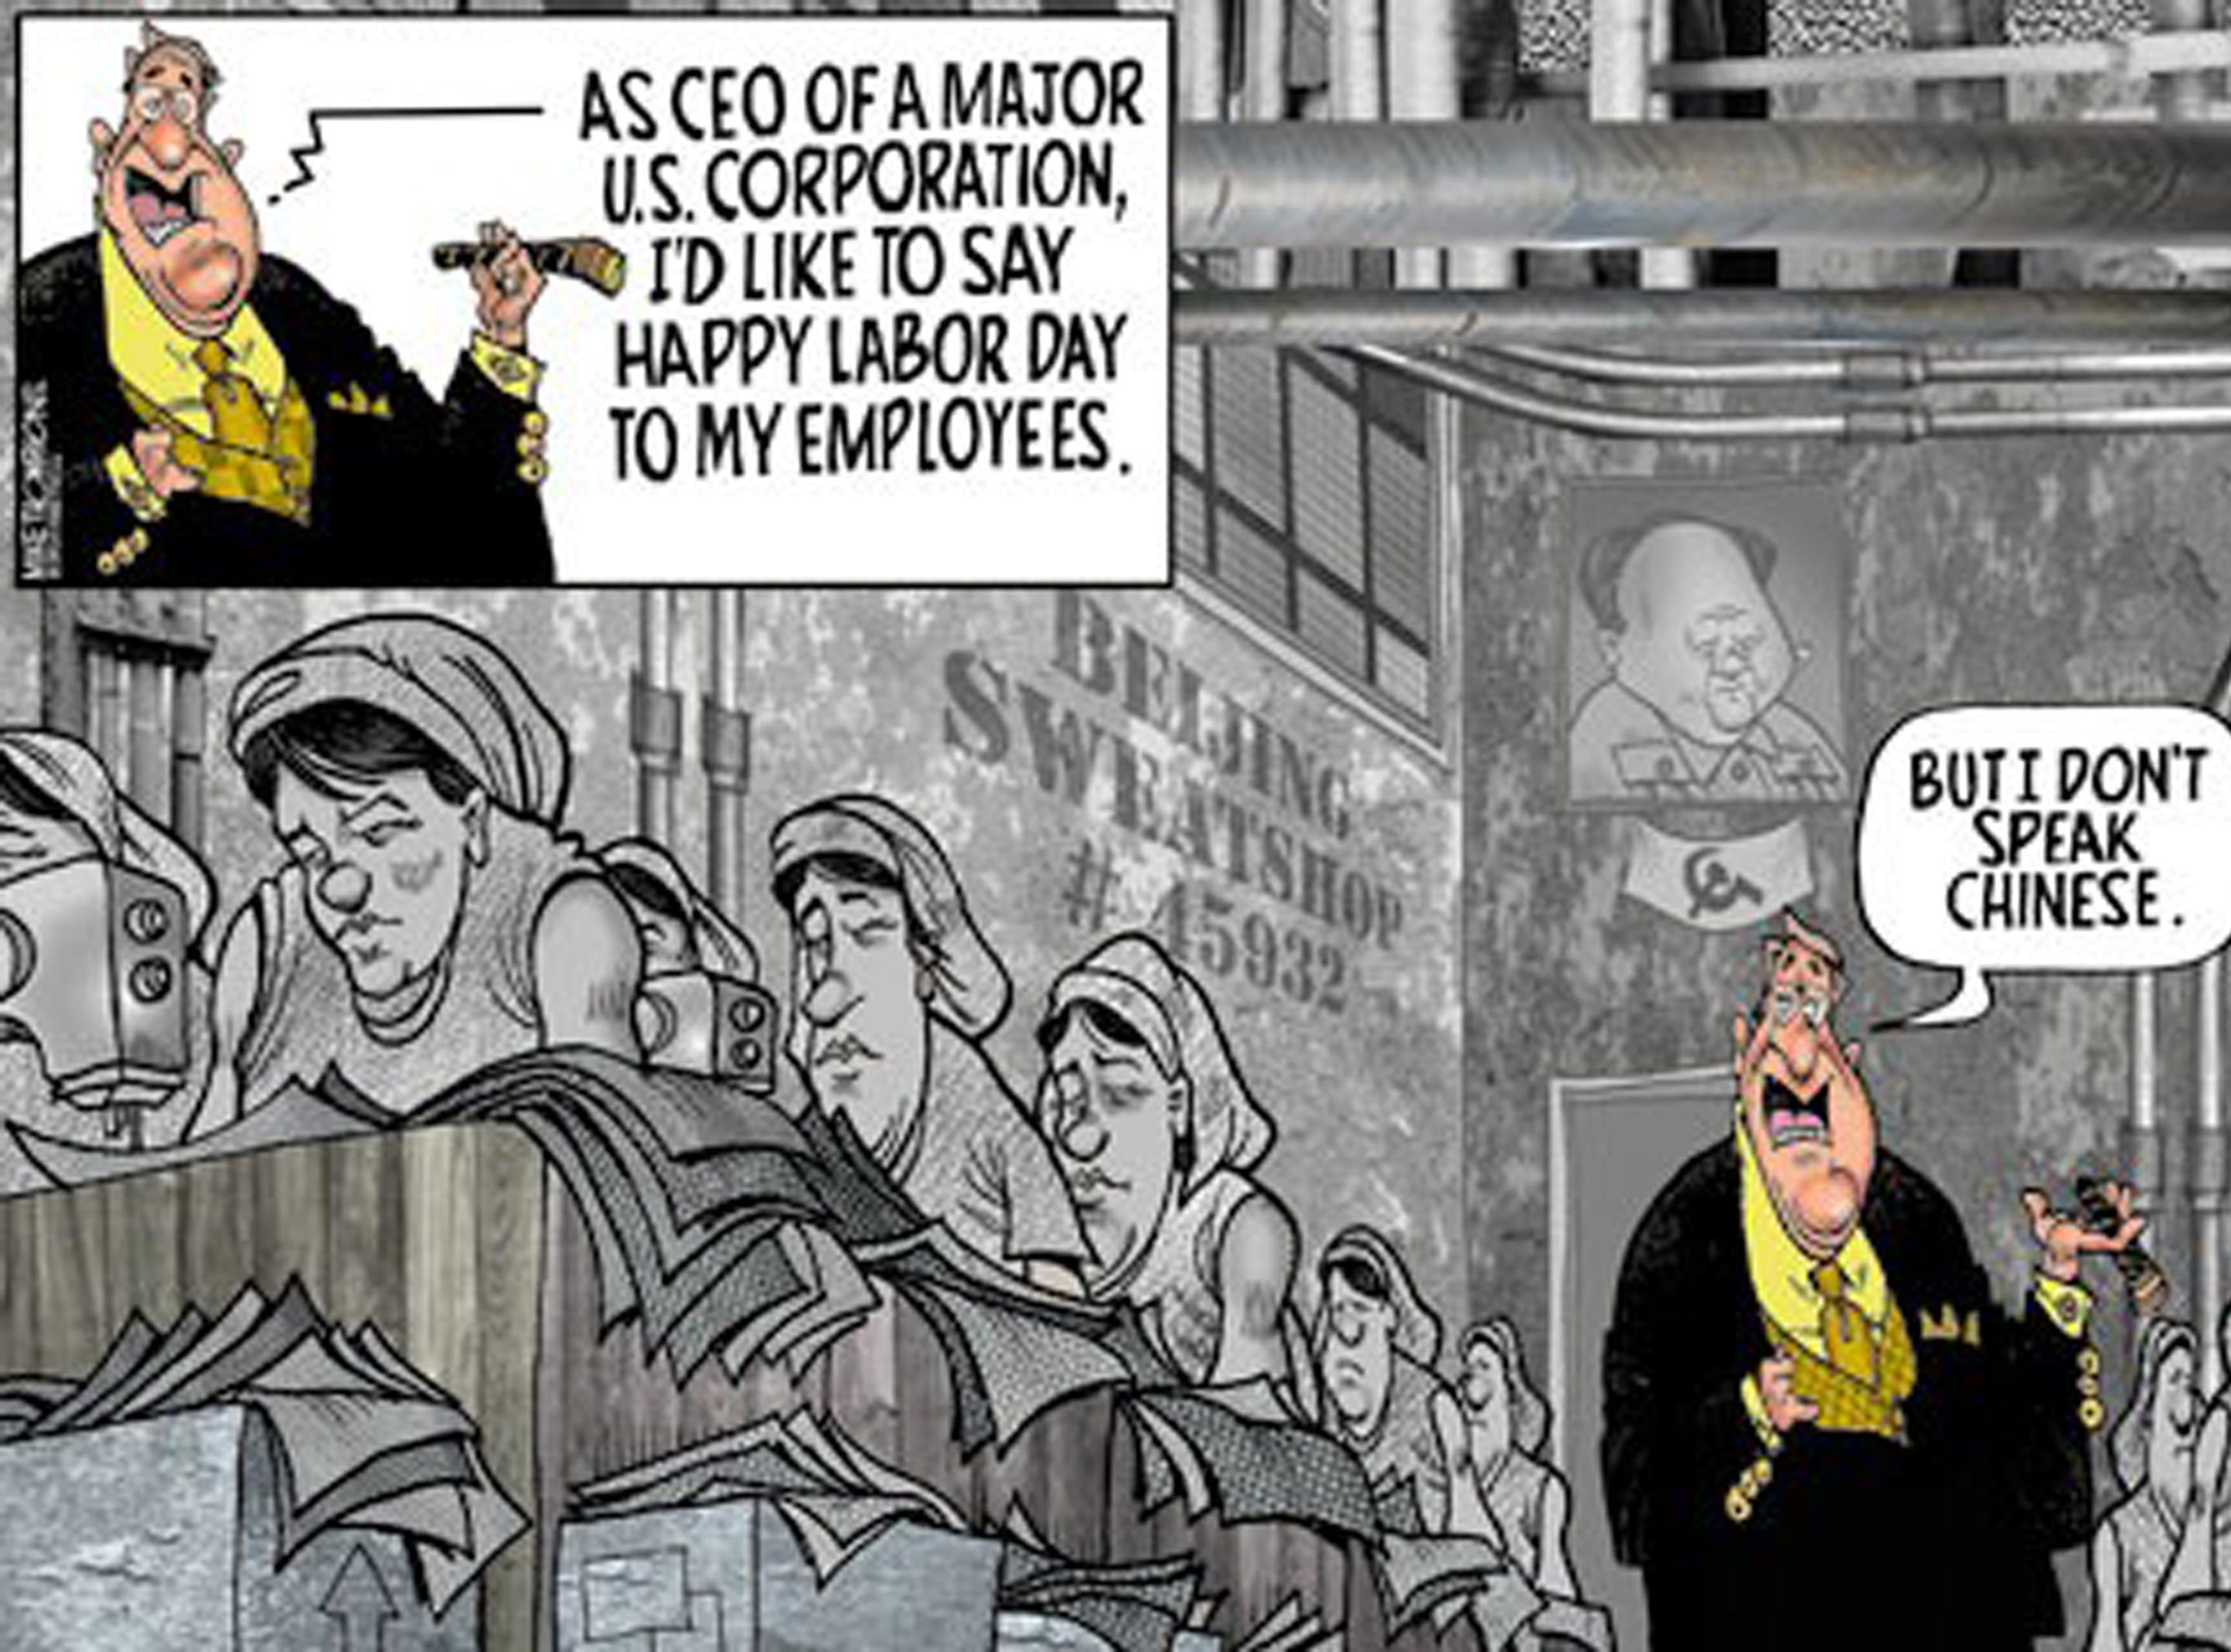 First published for Labor Day 2006. The cartoonist's homepage, freep.com/mikethompson